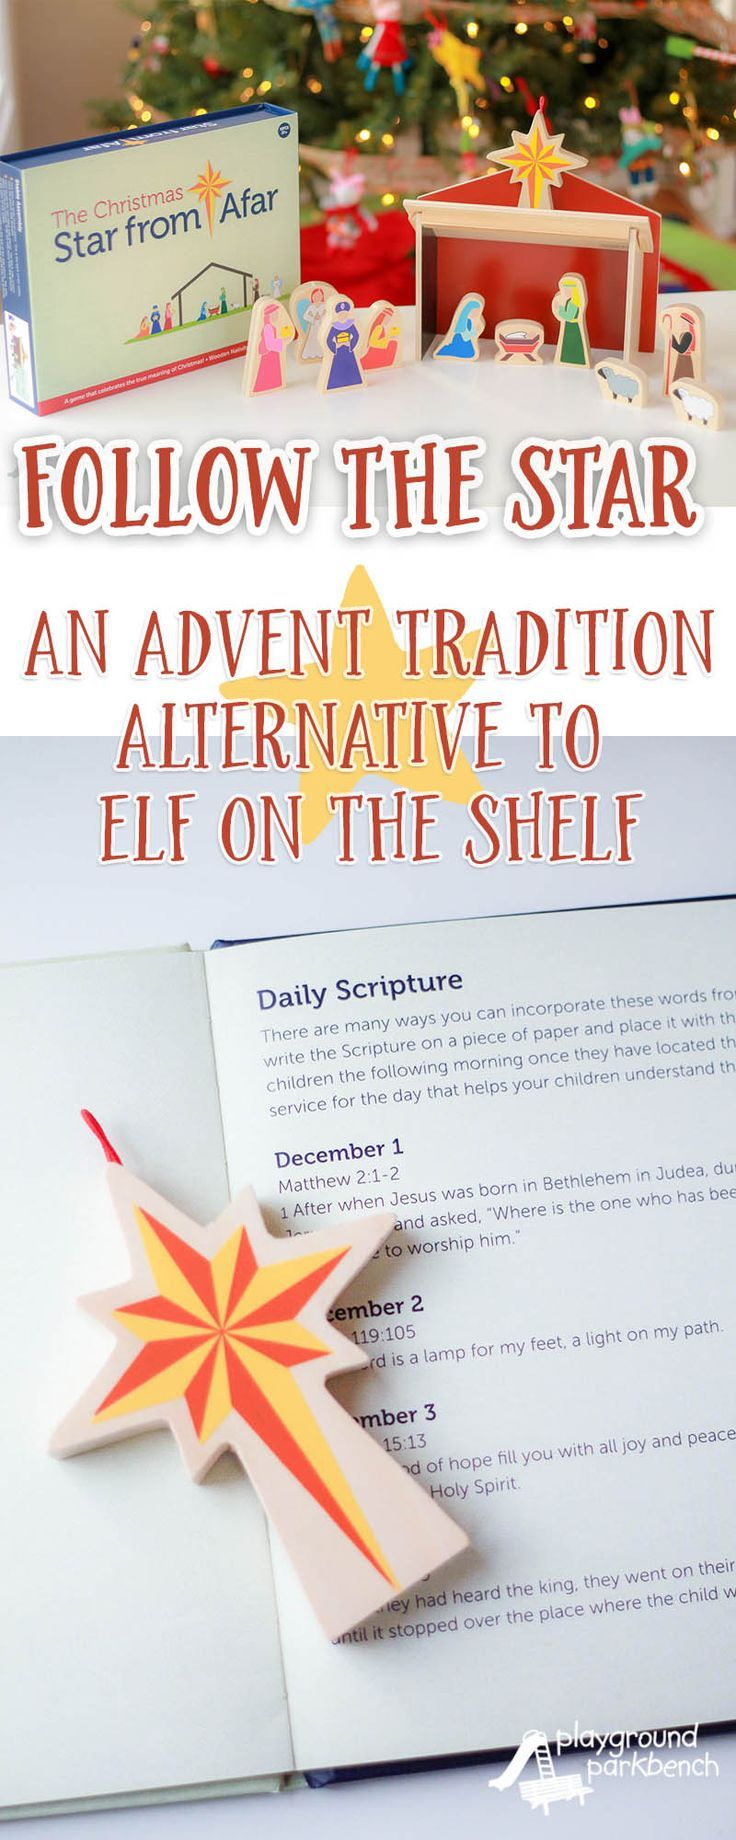 Celebrate the Christmas season with a new Advent tradition... one that celebrates the TRUE meaning of Christmas everyday. The Star from Afar boxed set includes a beautiful nativity scene and a hardcover book that explains how to help the wise men follow the star each day of the season, until they arrive to deliver their gifts on Christmas day. The perfect gift for children this holiday | Advent | Nativity Set | Gift Ideas | Family Traditions | #StarfromAfar #FollowtheStar #ad